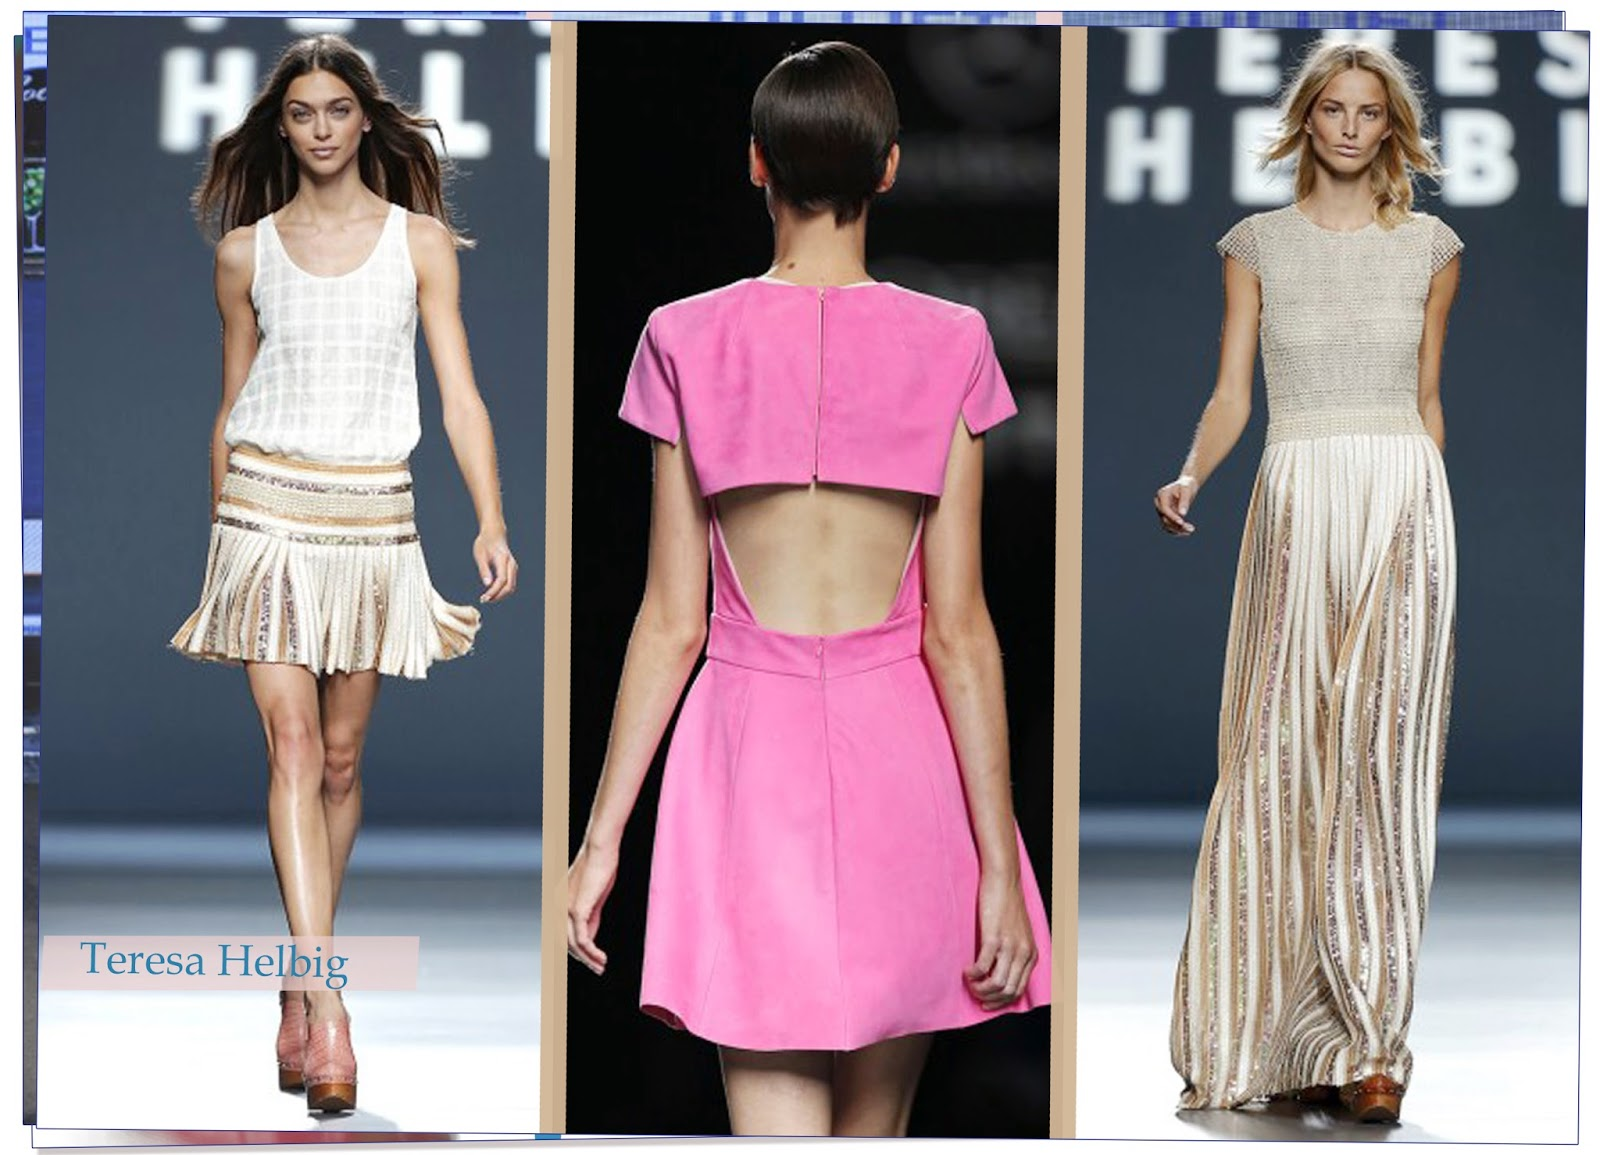 photo-mbfwm-2014-teresa_helbig